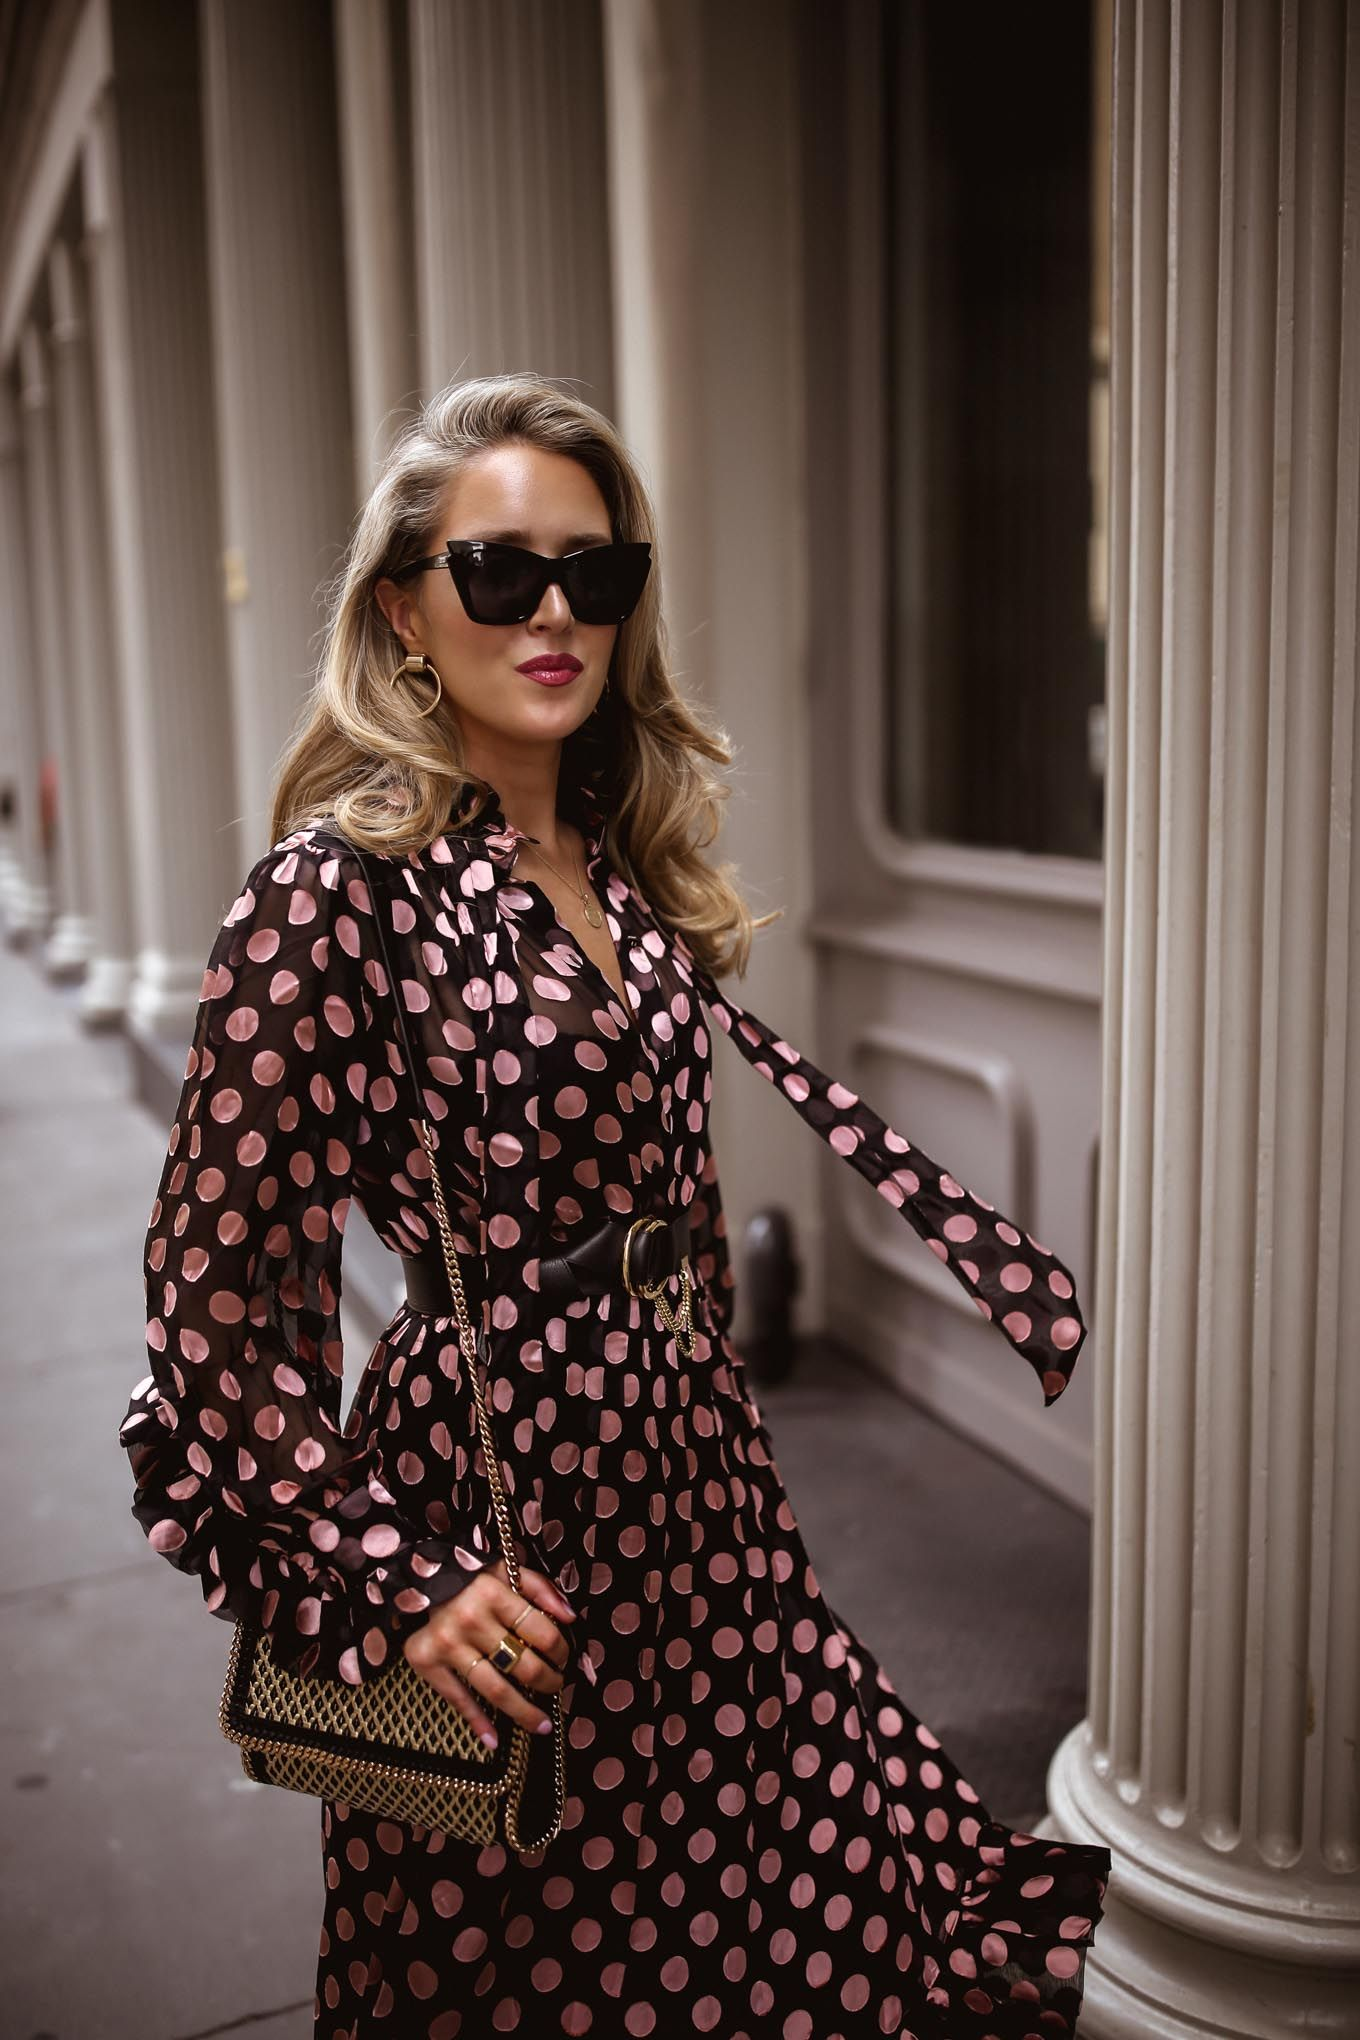 5ccb072dffb Mary Orton fashion blogger in Zimmerman pink black polka dot dress  accessorized with sunglasses